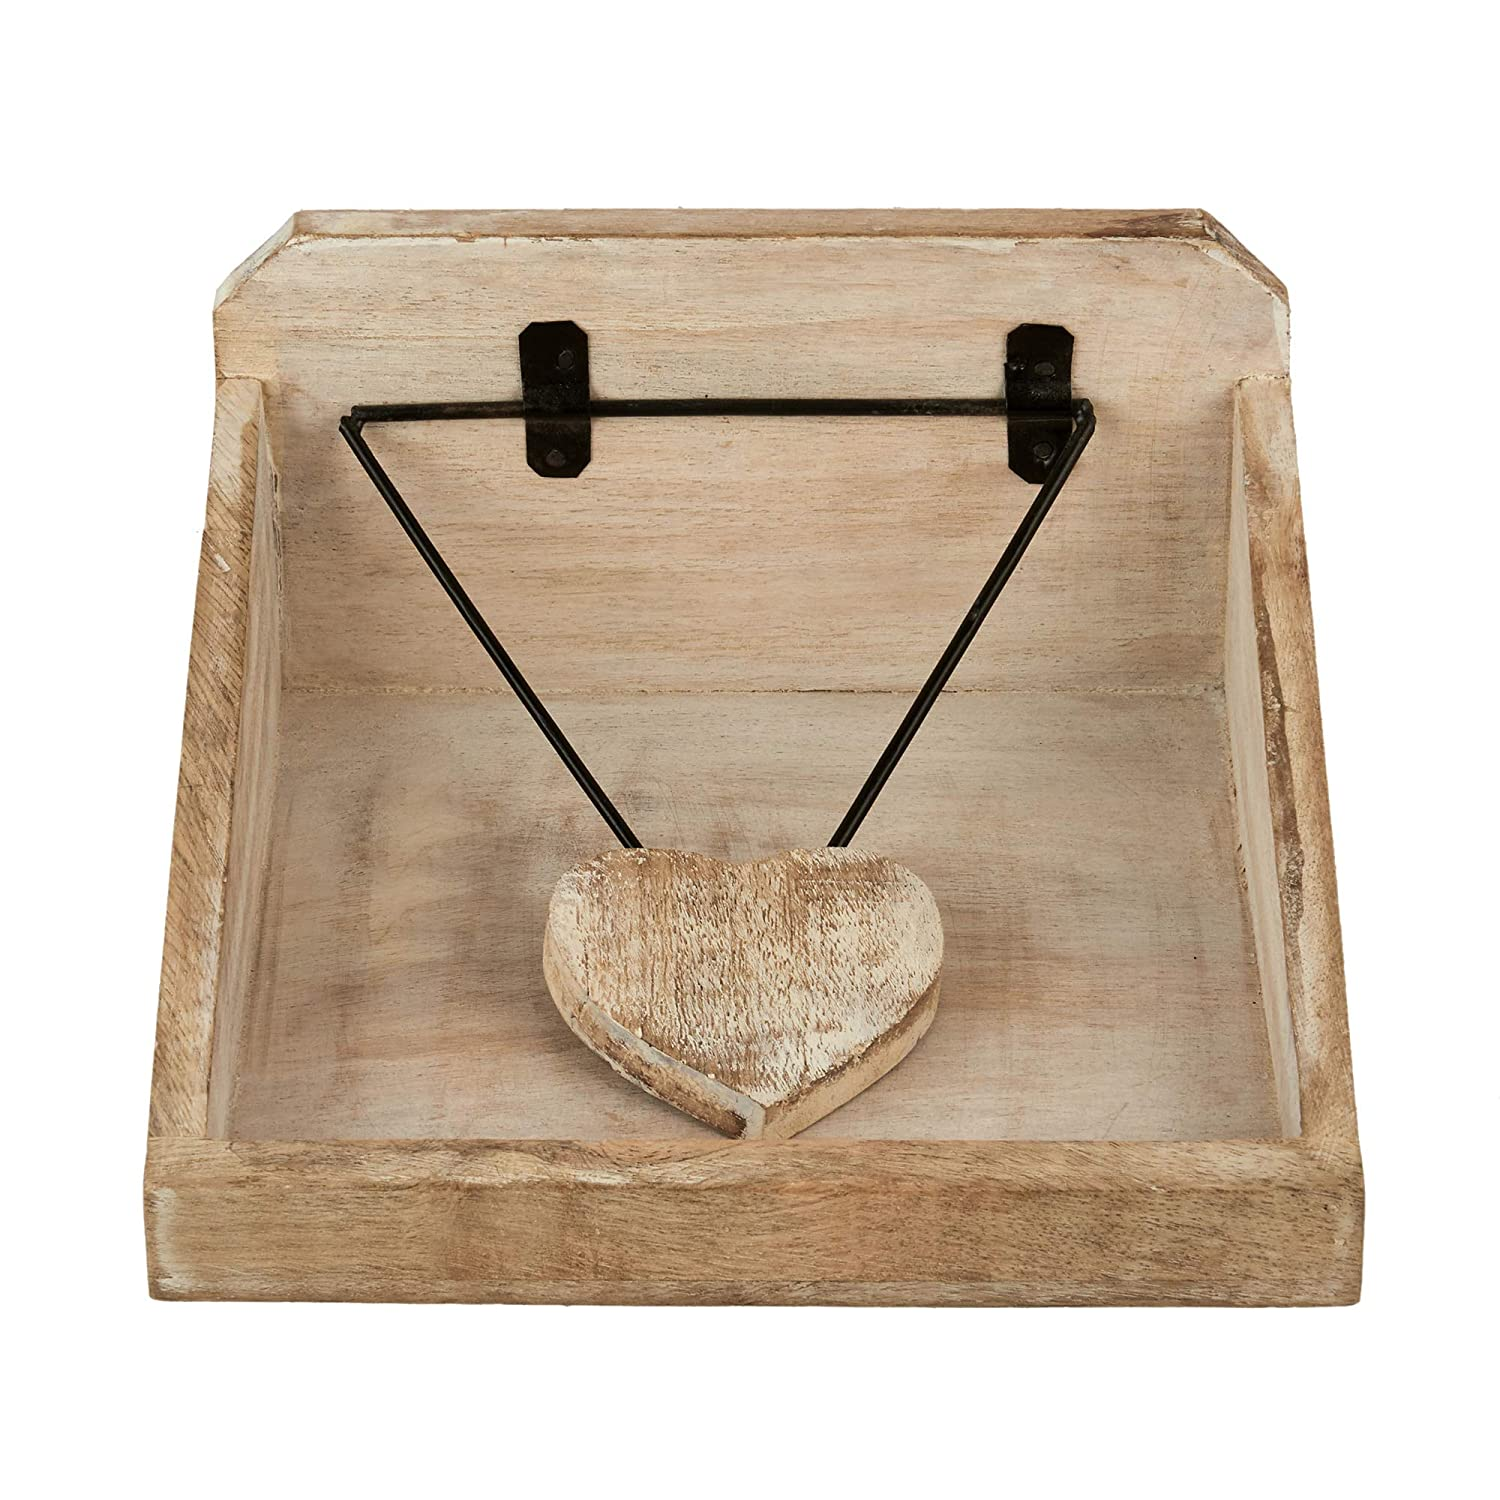 Office Dinning Kitchen Cocktail Party Tabletop Napkin Organizer for Farmhouse Shabby Chic Wood Napkin Holder Decorative Flat Paper Napkin Dispenser with Heart Shape Weight Arm